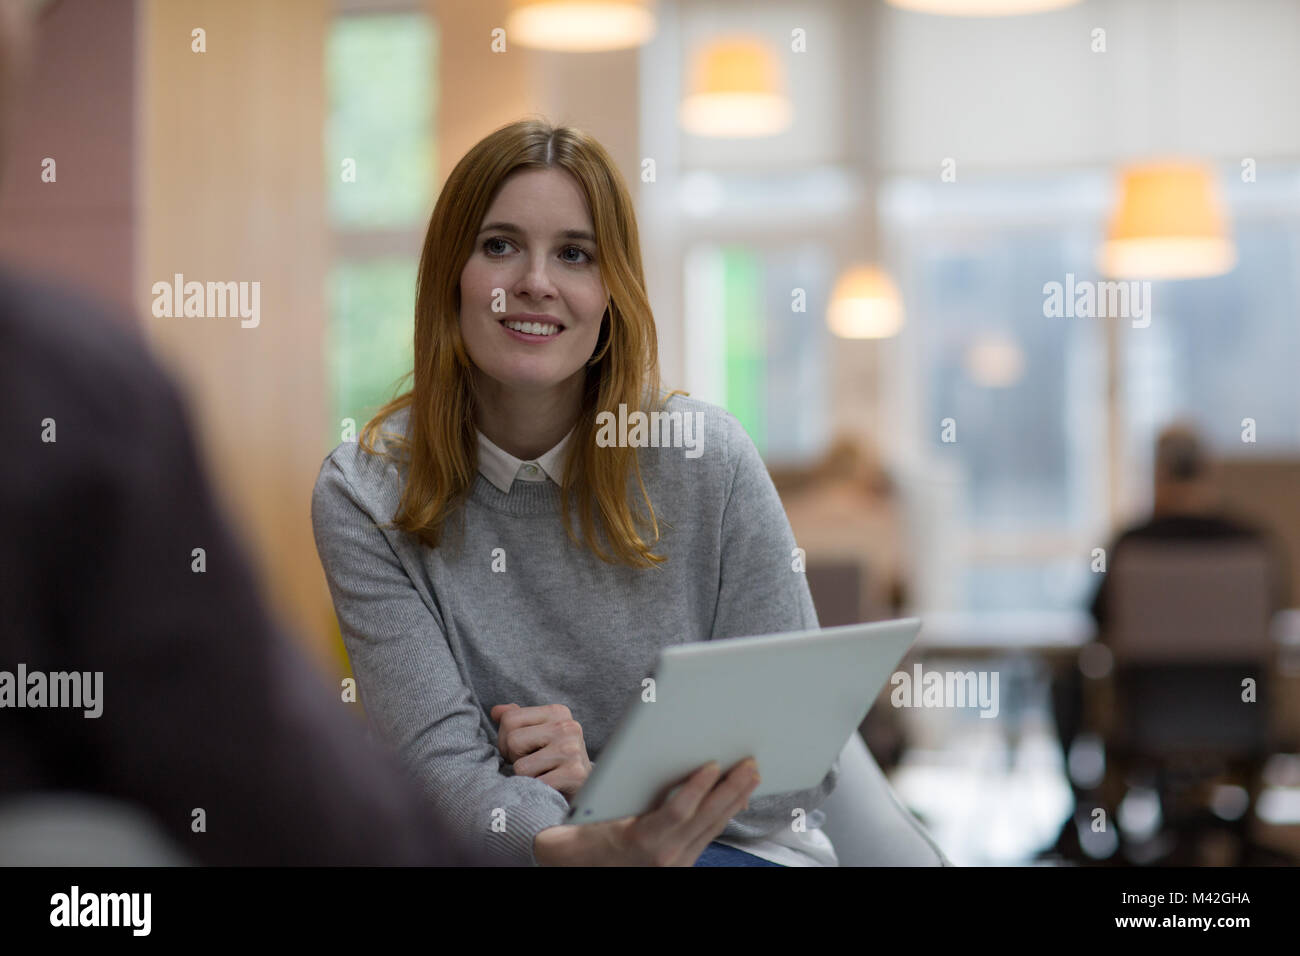 Businesswoman in a meeting holding a digital tablet - Stock Image